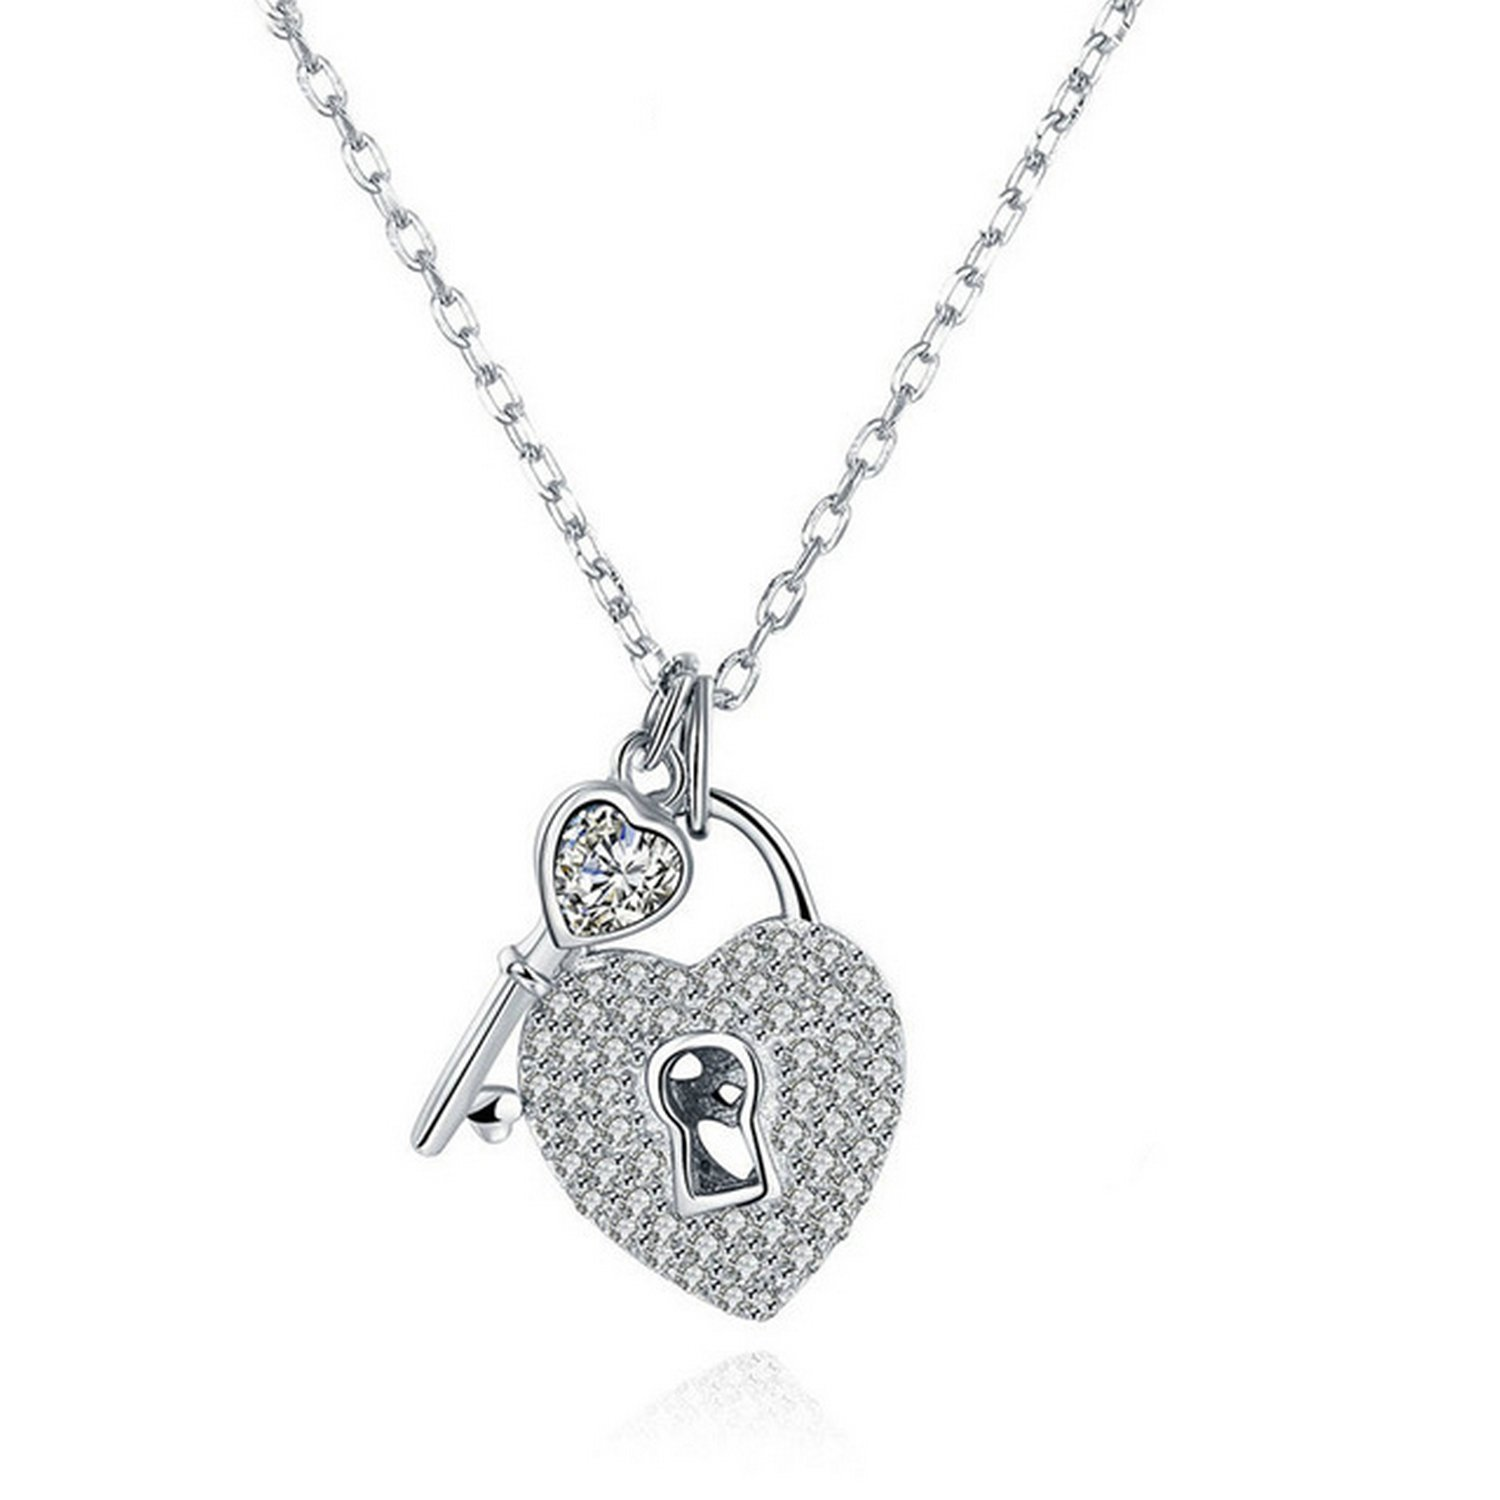 CS-DB Jewelry Silver Heart Lock Choker Sparkling Chain Charm Pendants Necklaces